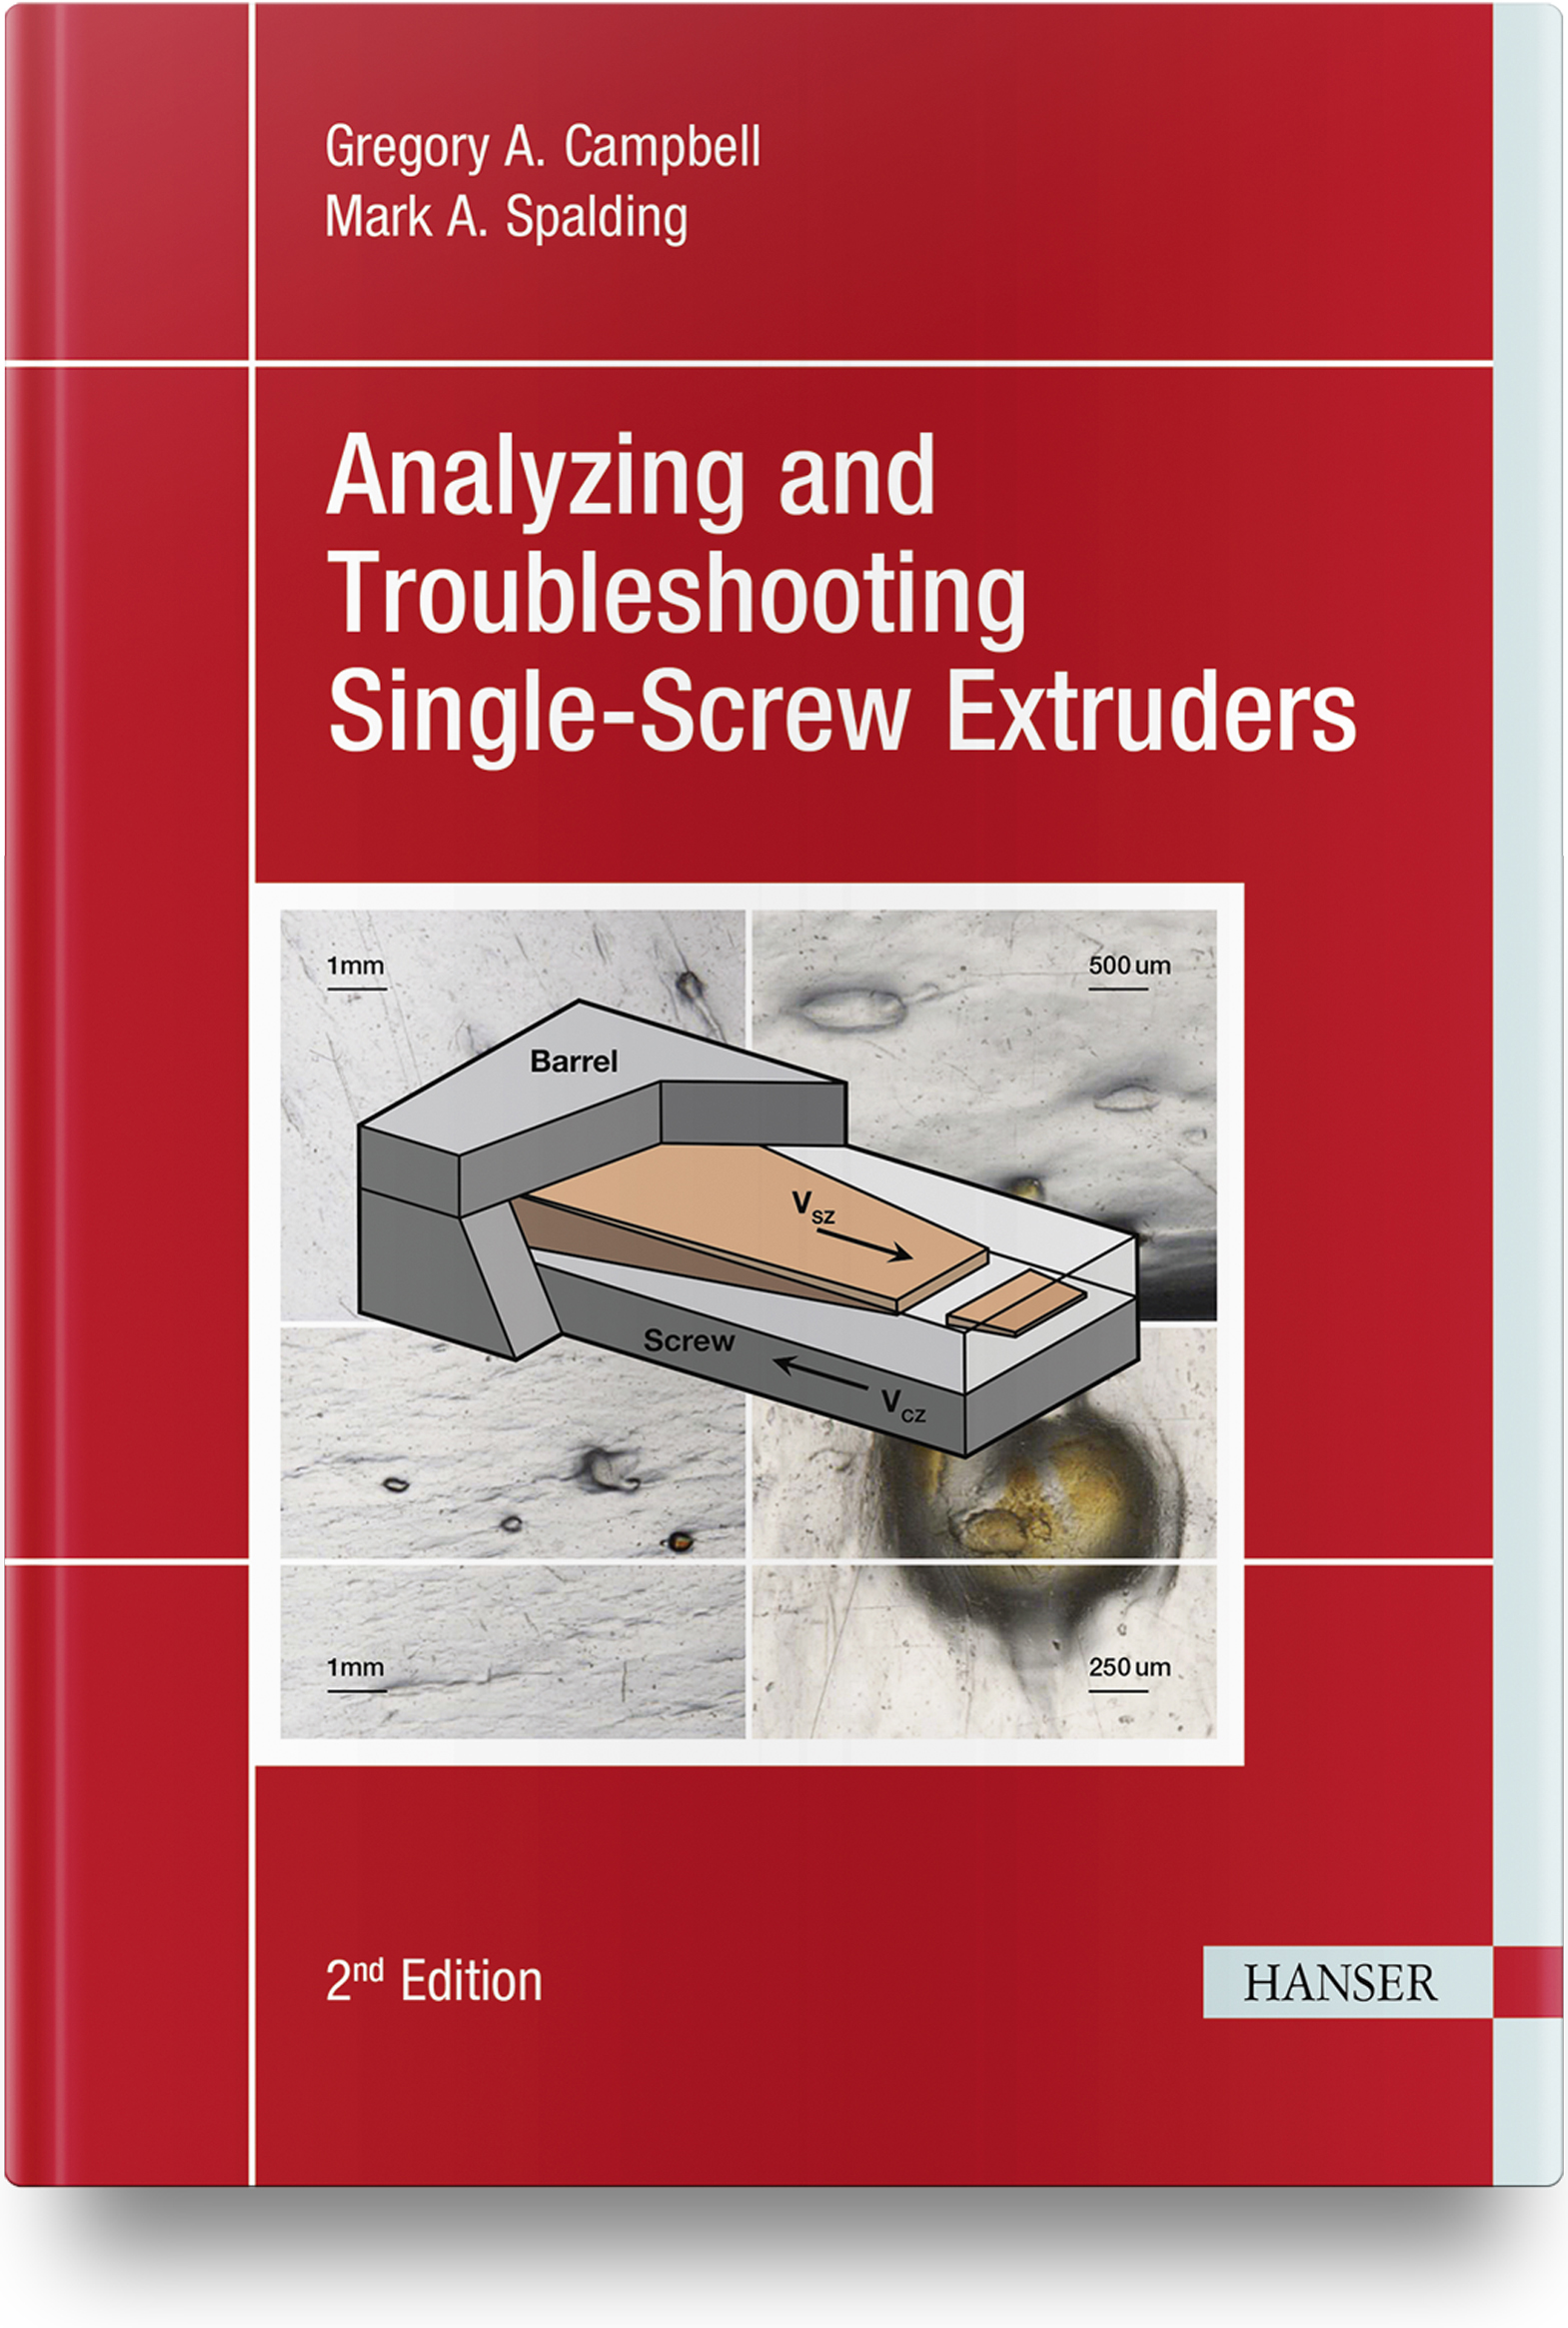 Campbell, Spalding, Analyzing and Troubleshooting Single-Screw Extruders, 978-1-56990-784-9